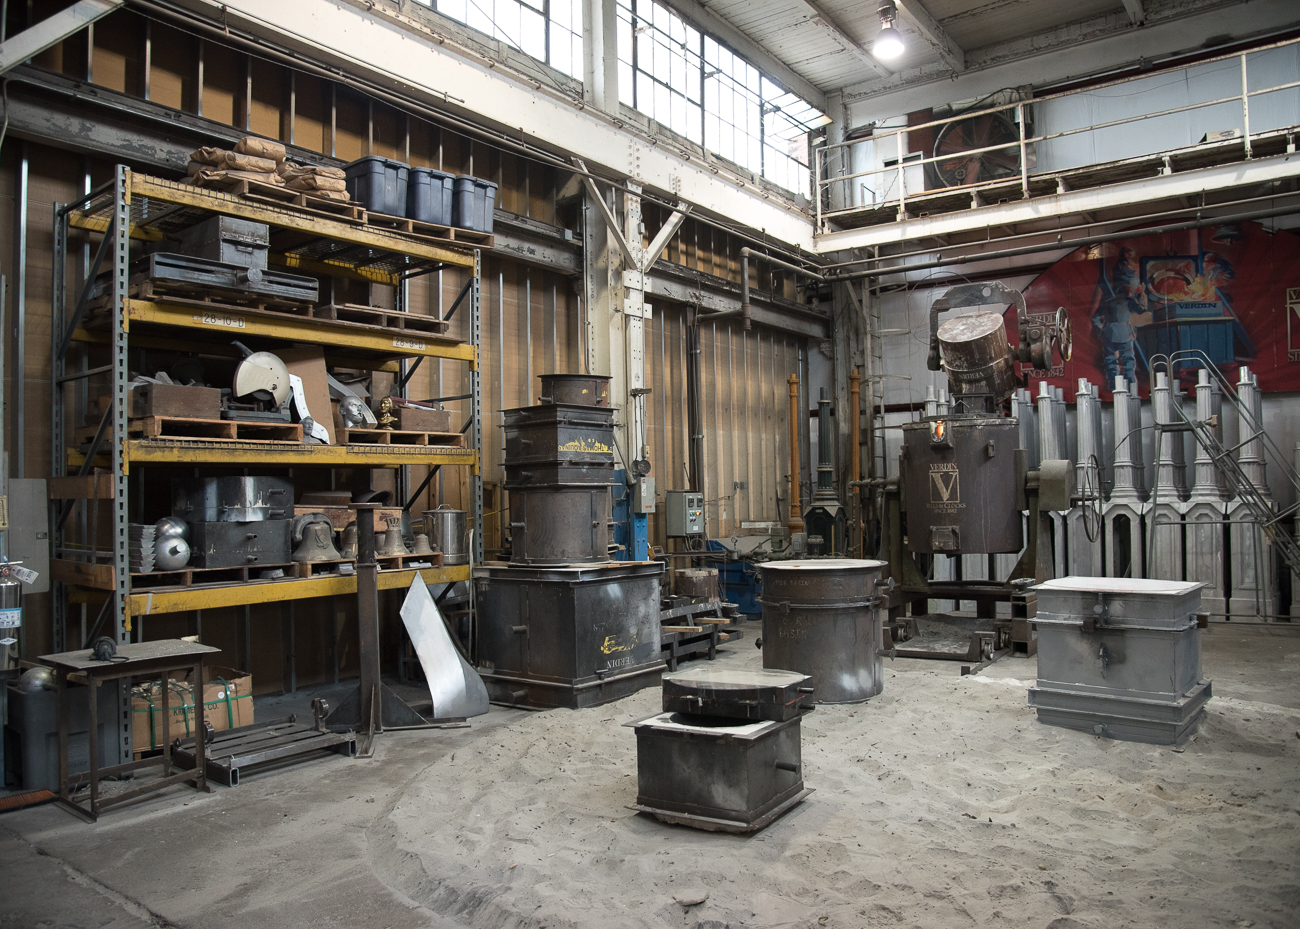 The foundry where Verdin bells are manufactured / Image: Phil Armstrong, Cincinnati Refined // Published: 10.19.18